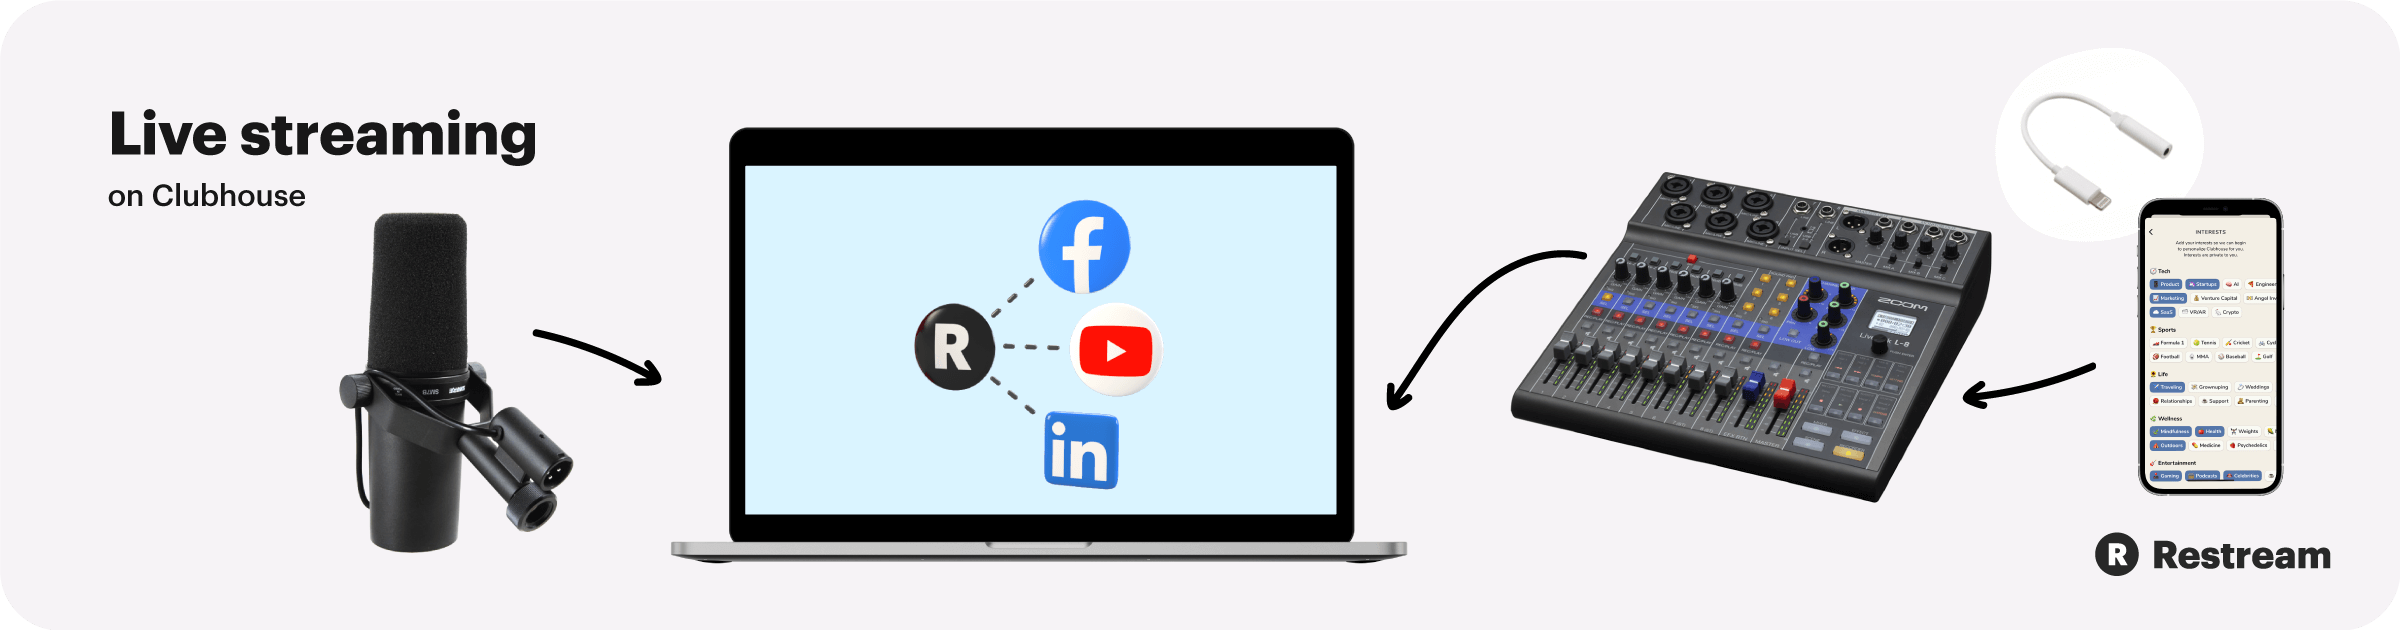 How to live stream on Clubhouse